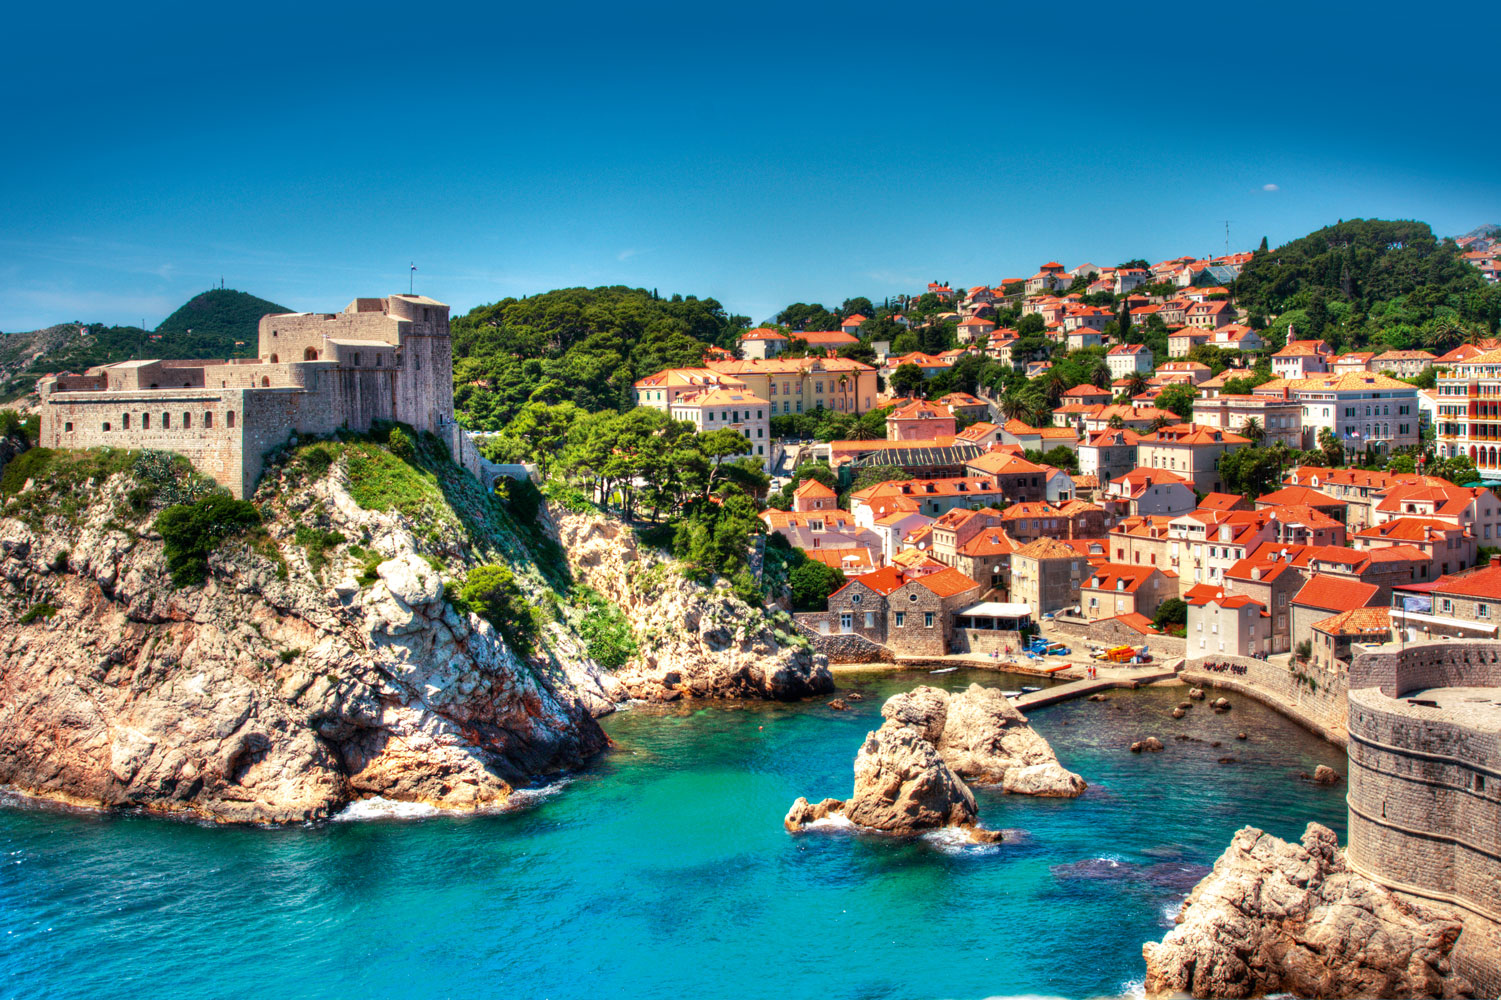 Dubrovnik, Croatia - Tourist Destinations